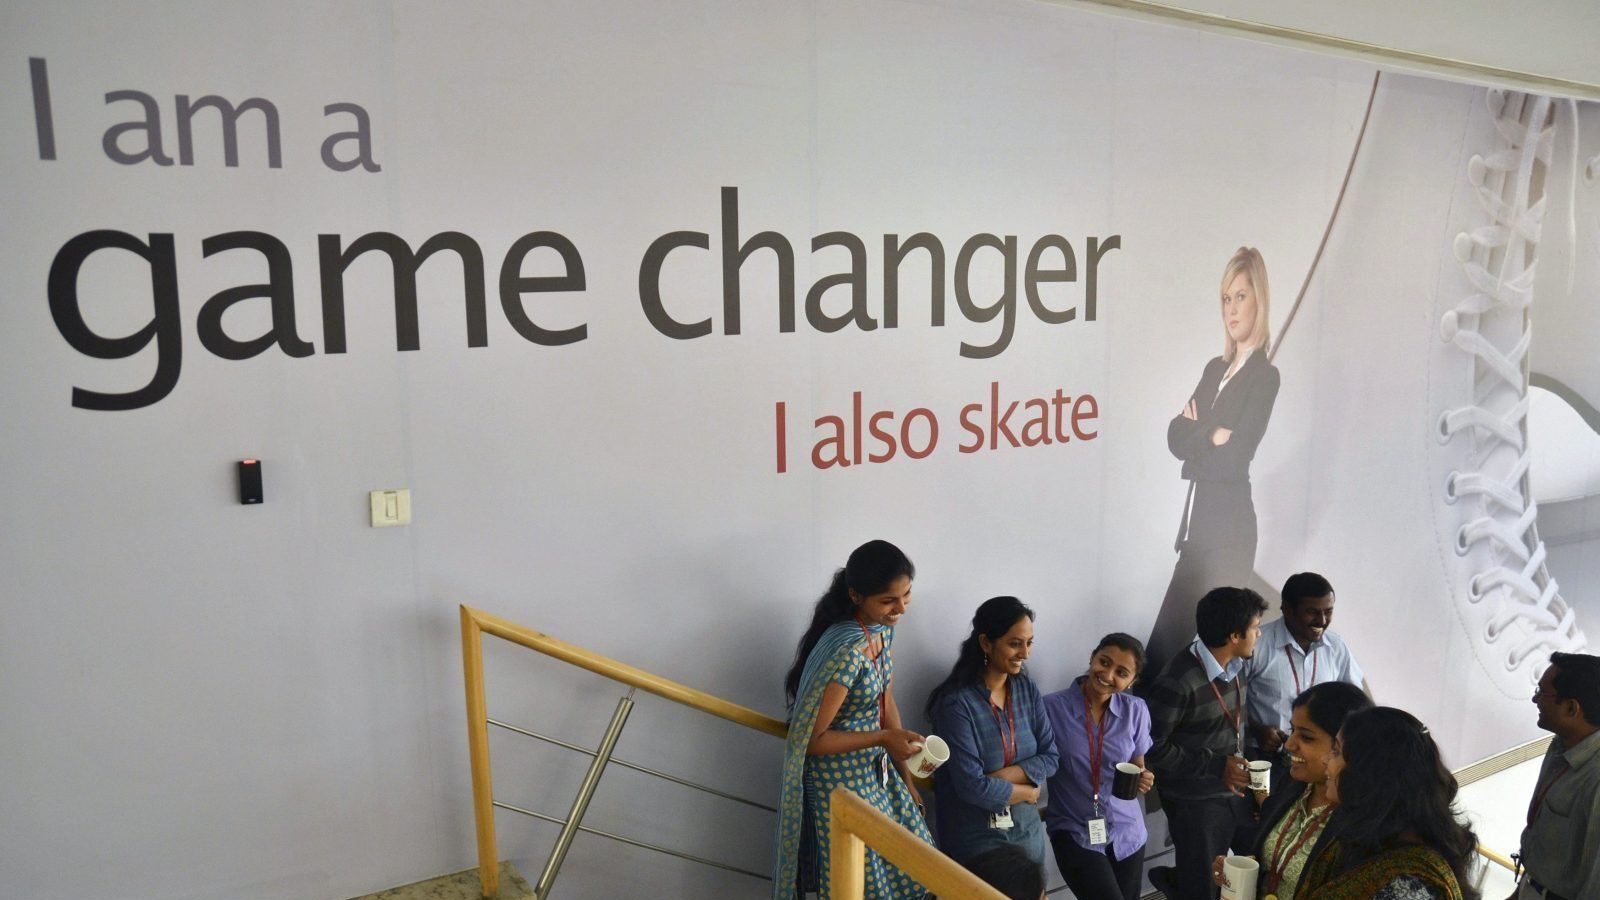 Employees chat with each other during lunch hours at the Indian headquarters of iGate in the southern Indian city of Bangalore February 4, 2013. A former Infosys Ltd executive is challenging the IT outsourcing industry's billing model by charging for results instead of basing fees on the time and labour put in by the armies of staff working for India's big firms. Picture taken February 4, 2013. REUTERS/Stringer (INDIA - Tags: BUSINESS SCIENCE TECHNOLOGY) - RTR3E3E6